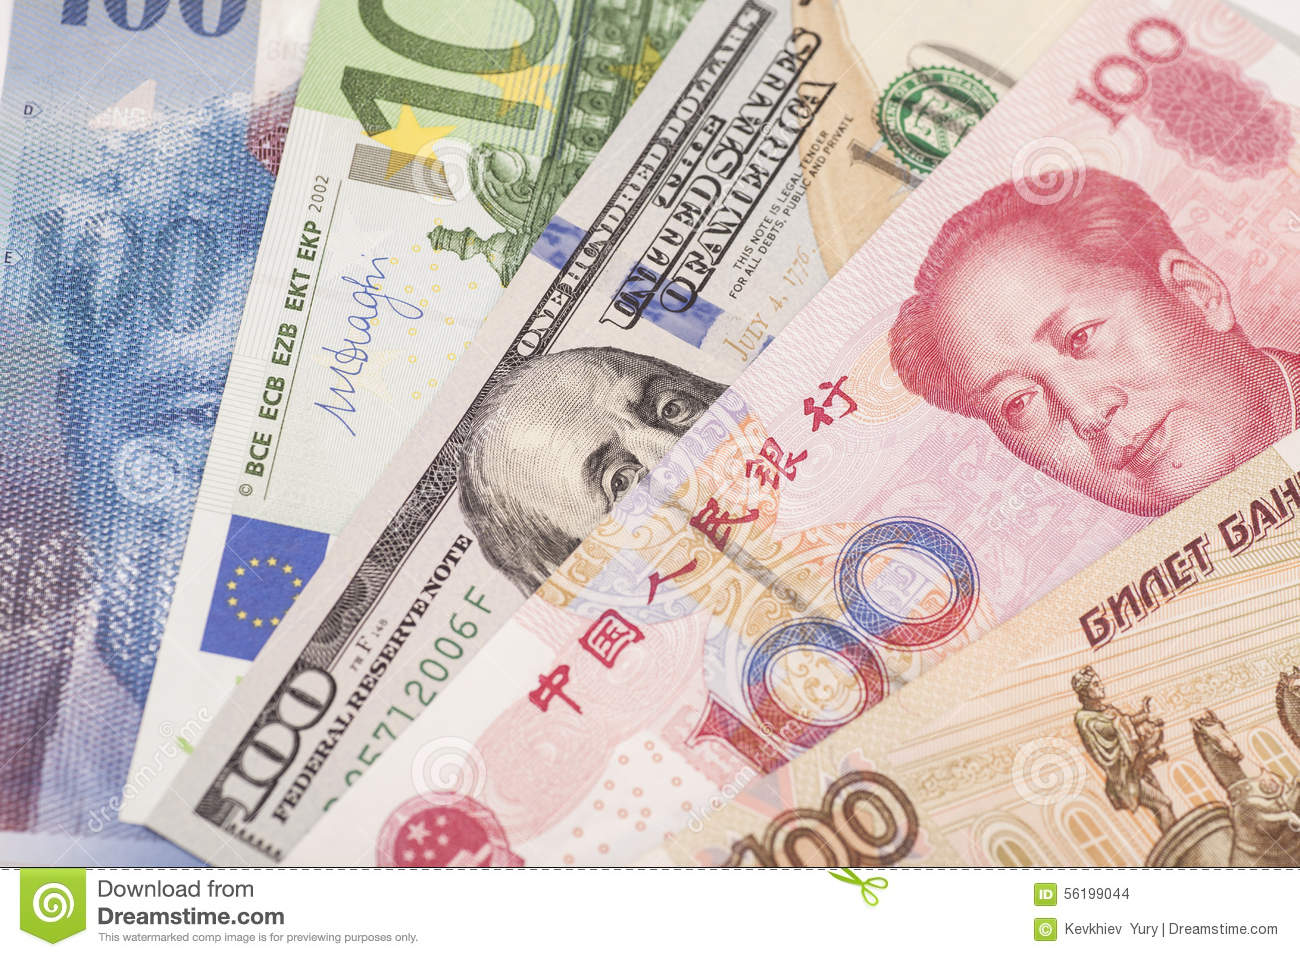 American dollars, European euro,Swiss franc,Chinese yuan and Russian Ruble bills